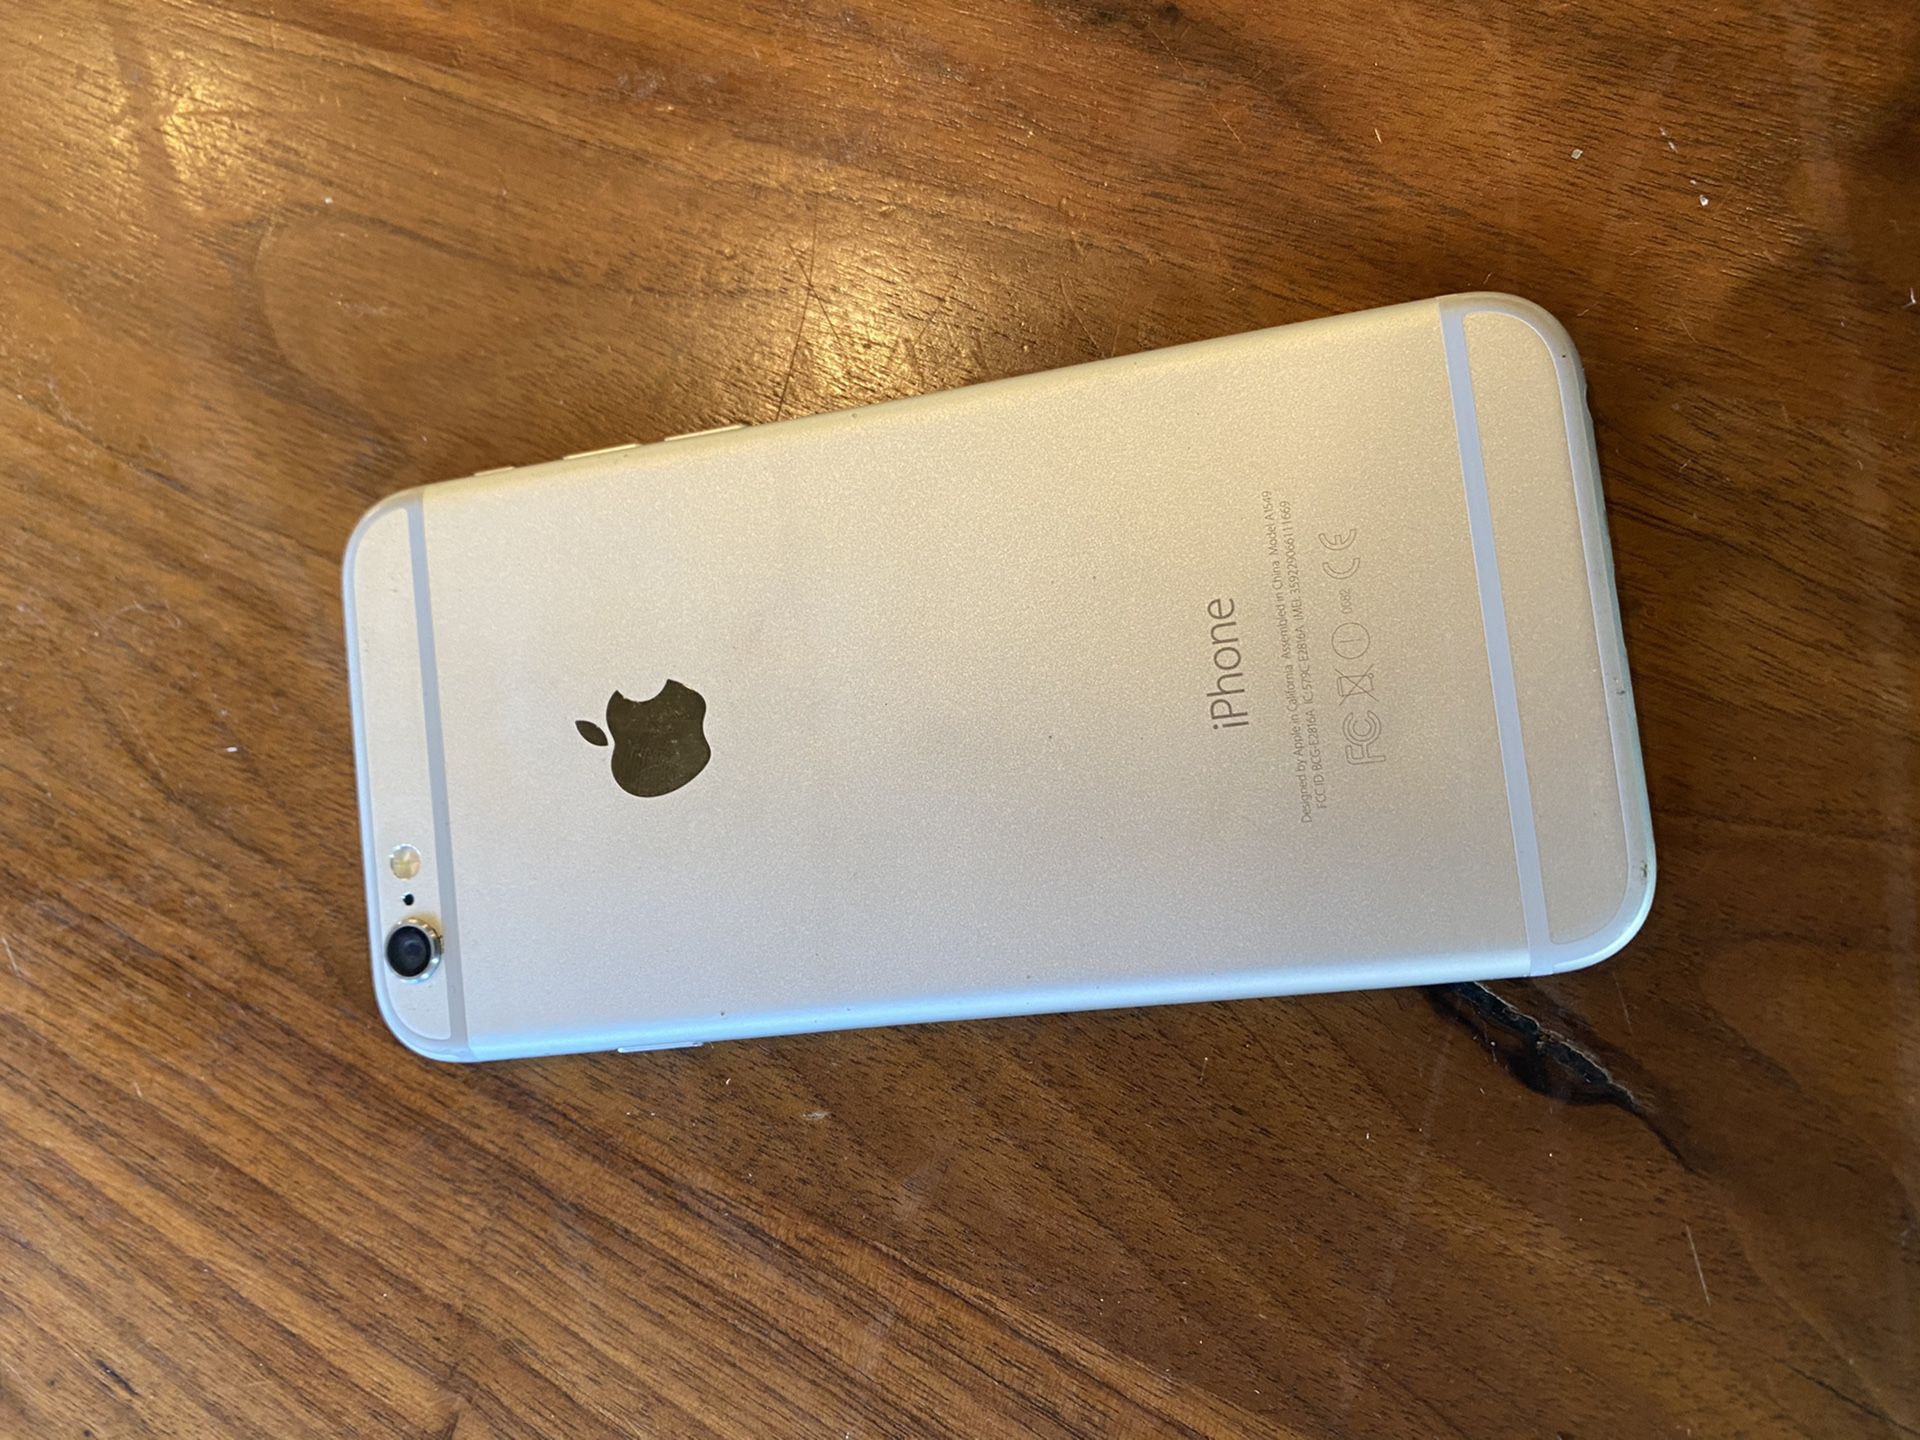 T mobile iPhone 6